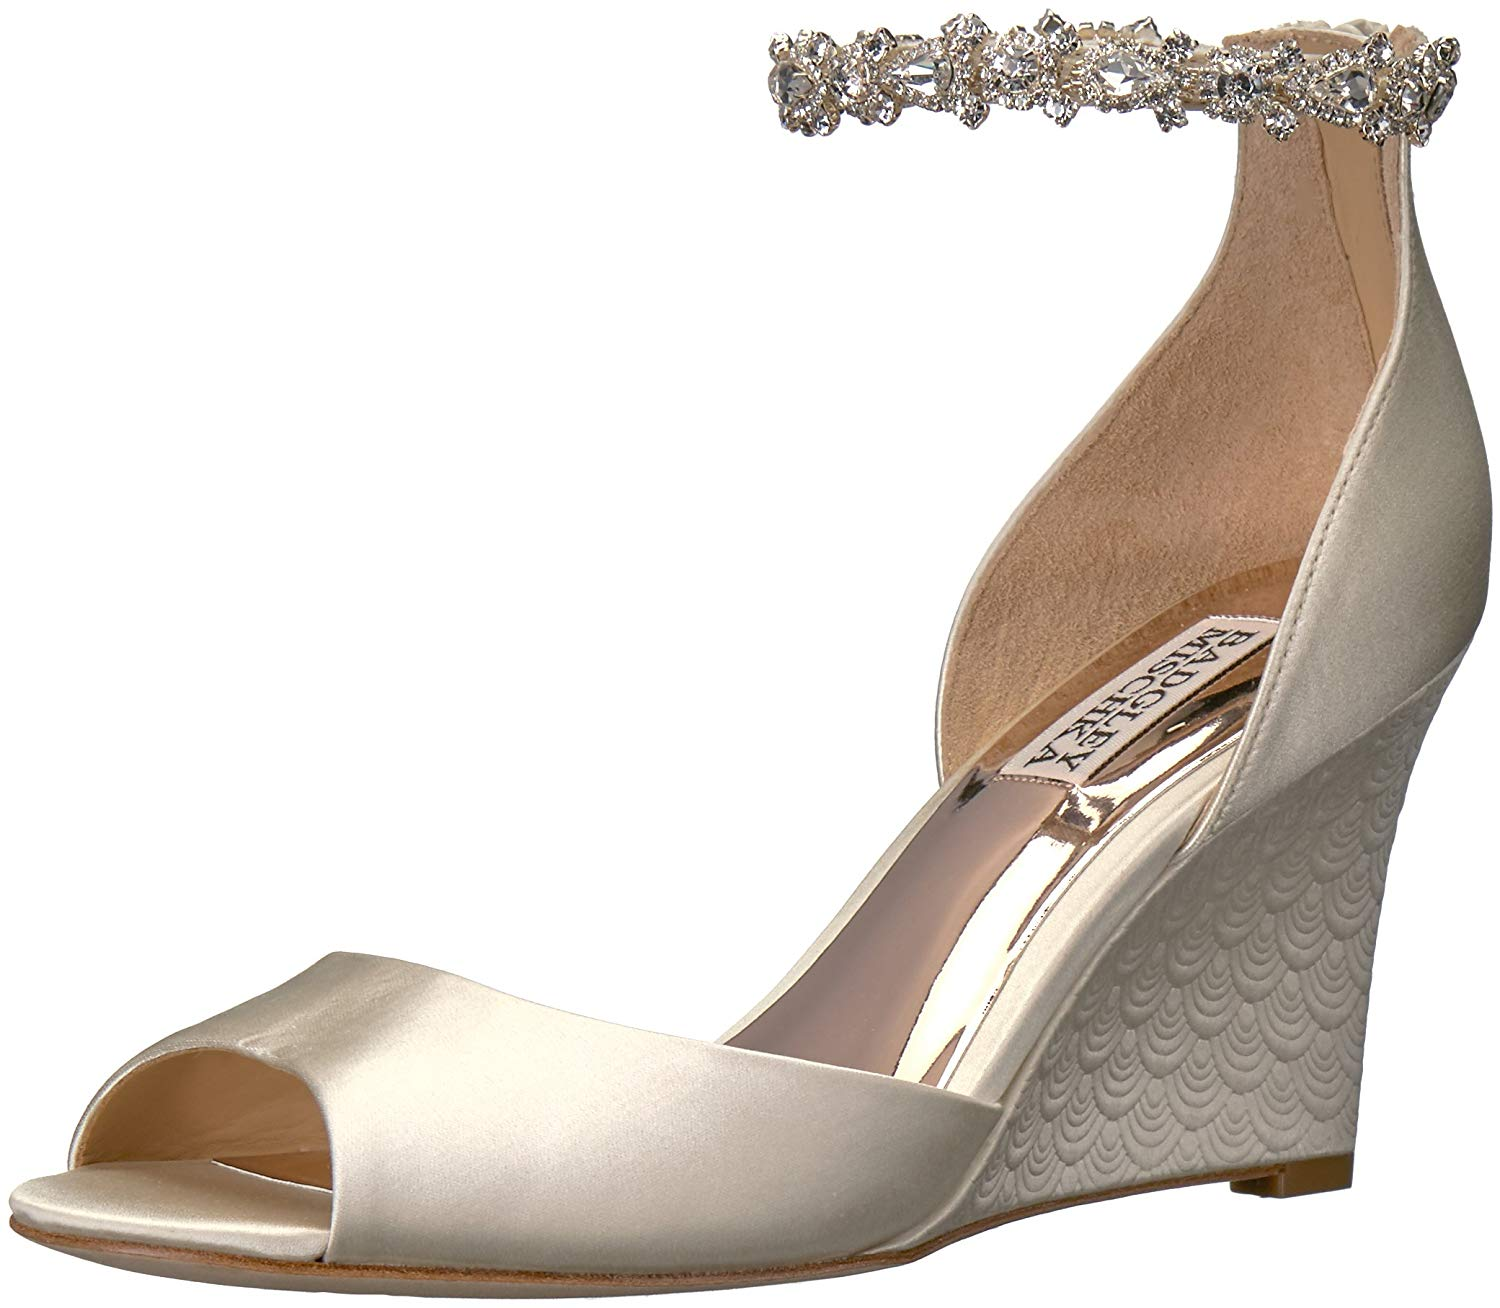 794f0b92db6 Details about Badgley Mischka Women's Tahlia Wedge Sandal, Ivory, Size 6.5  qluo